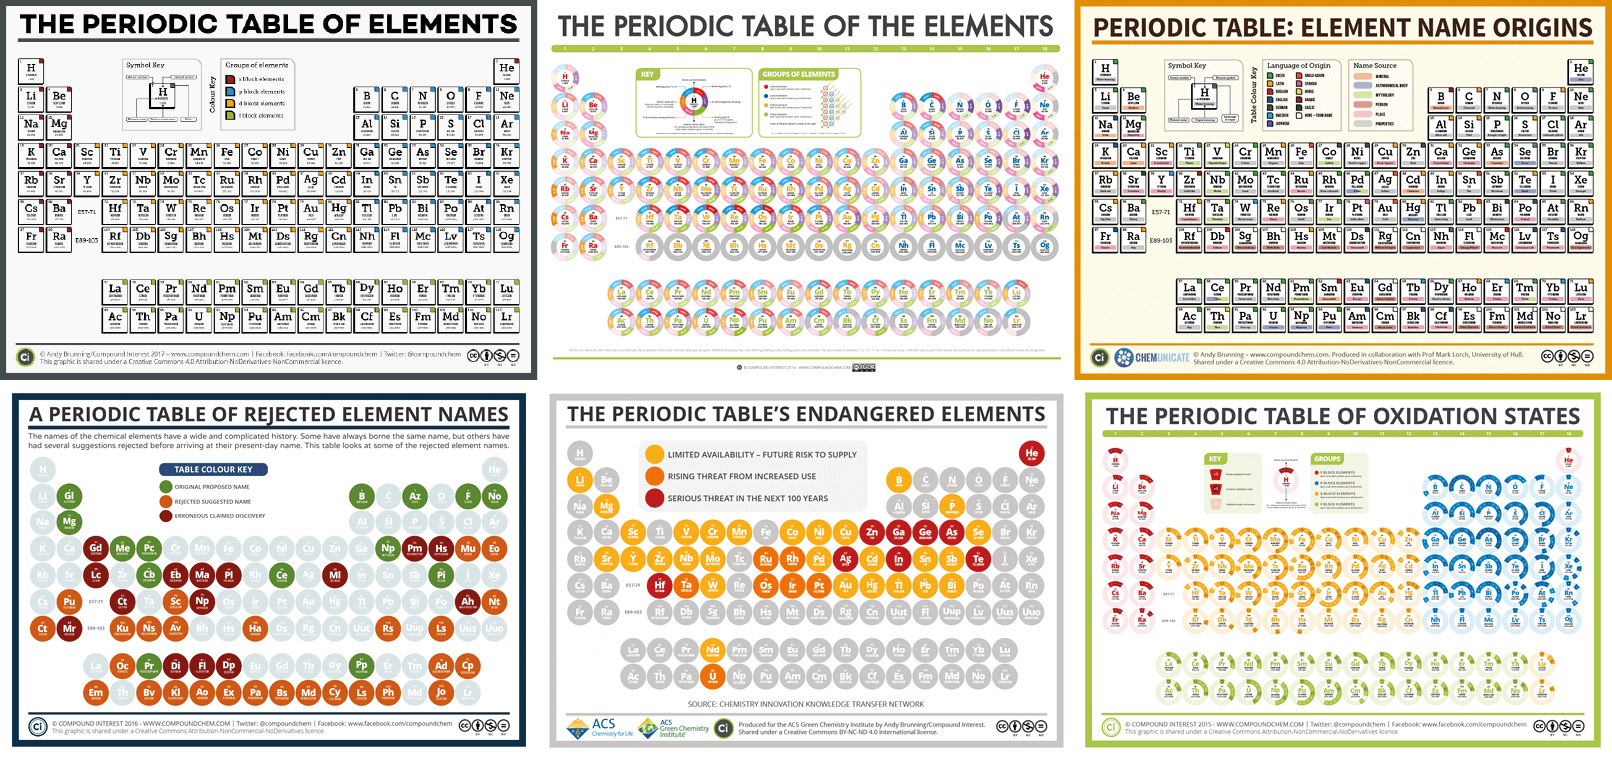 Compound interest national periodic table day six different compound interest national periodic table day six different periodic tables urtaz Choice Image